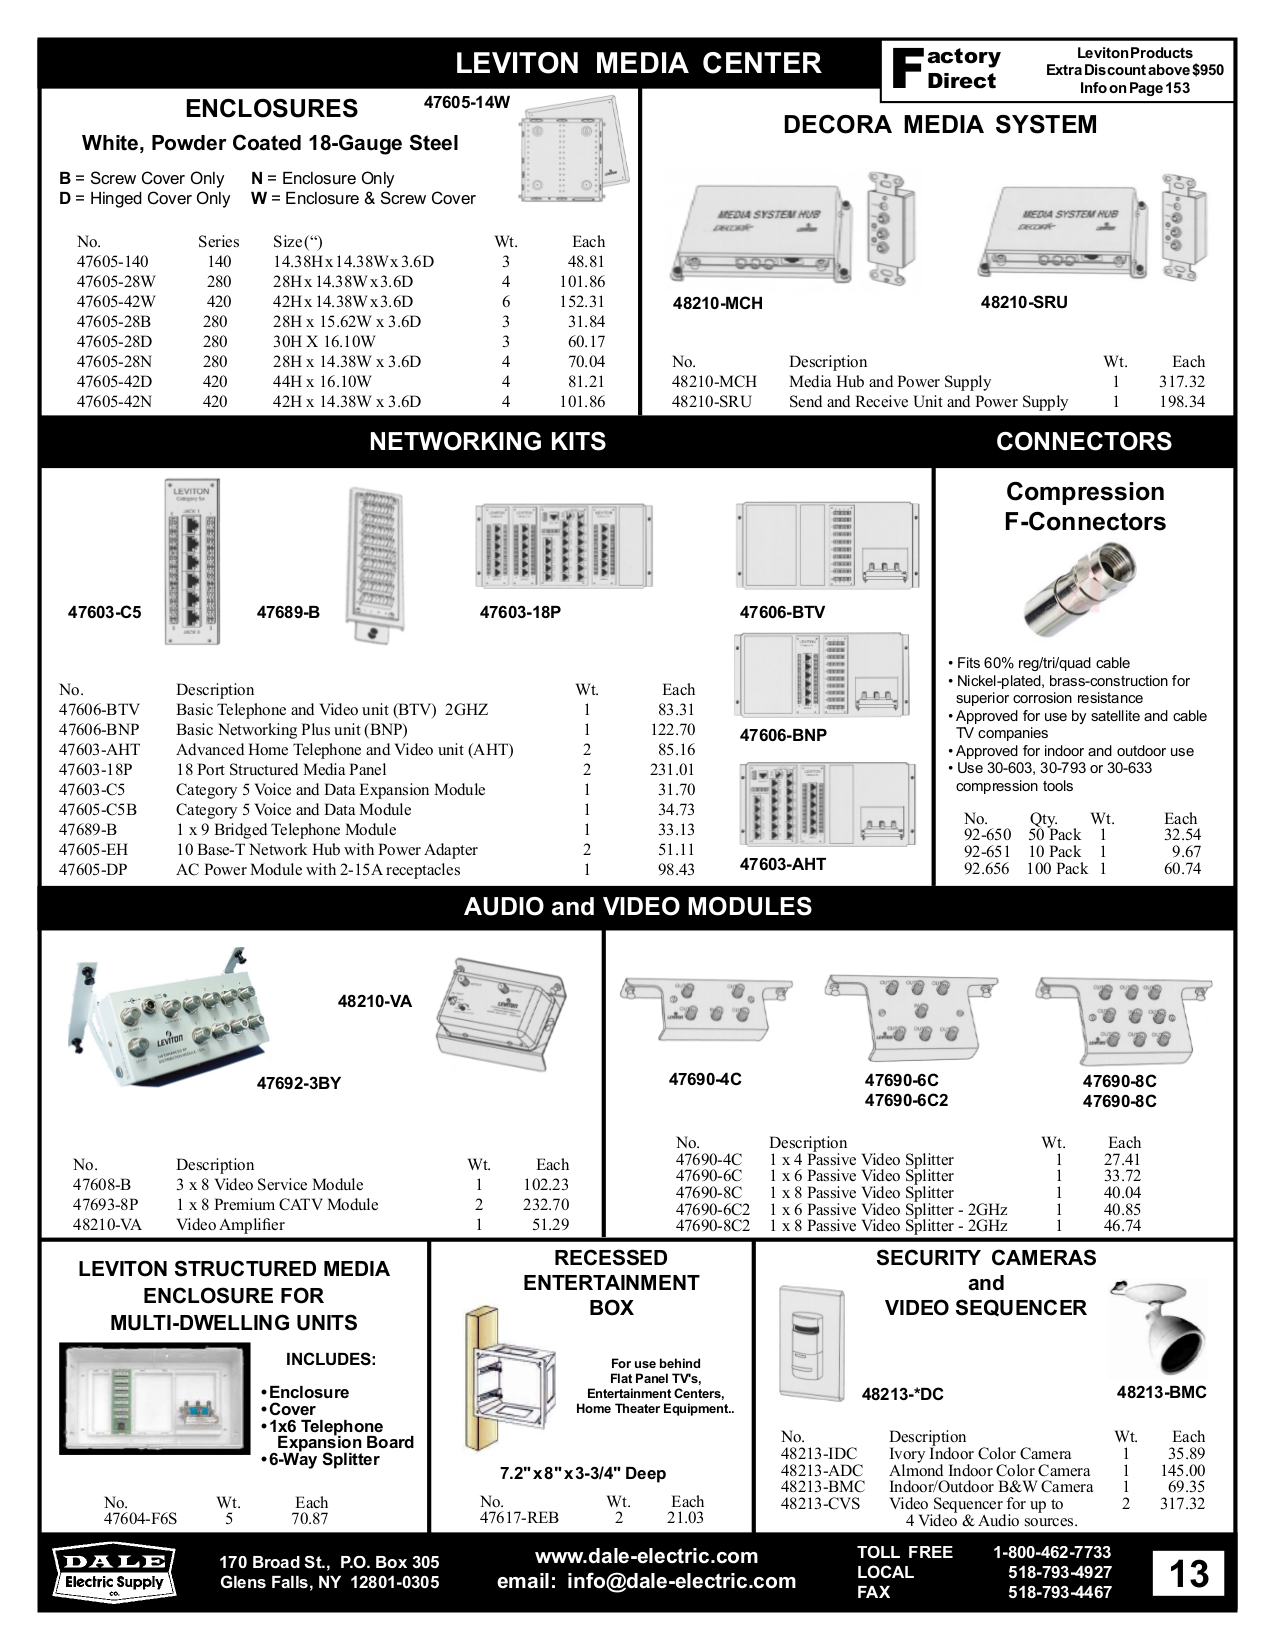 download free pdf for leviton 48213